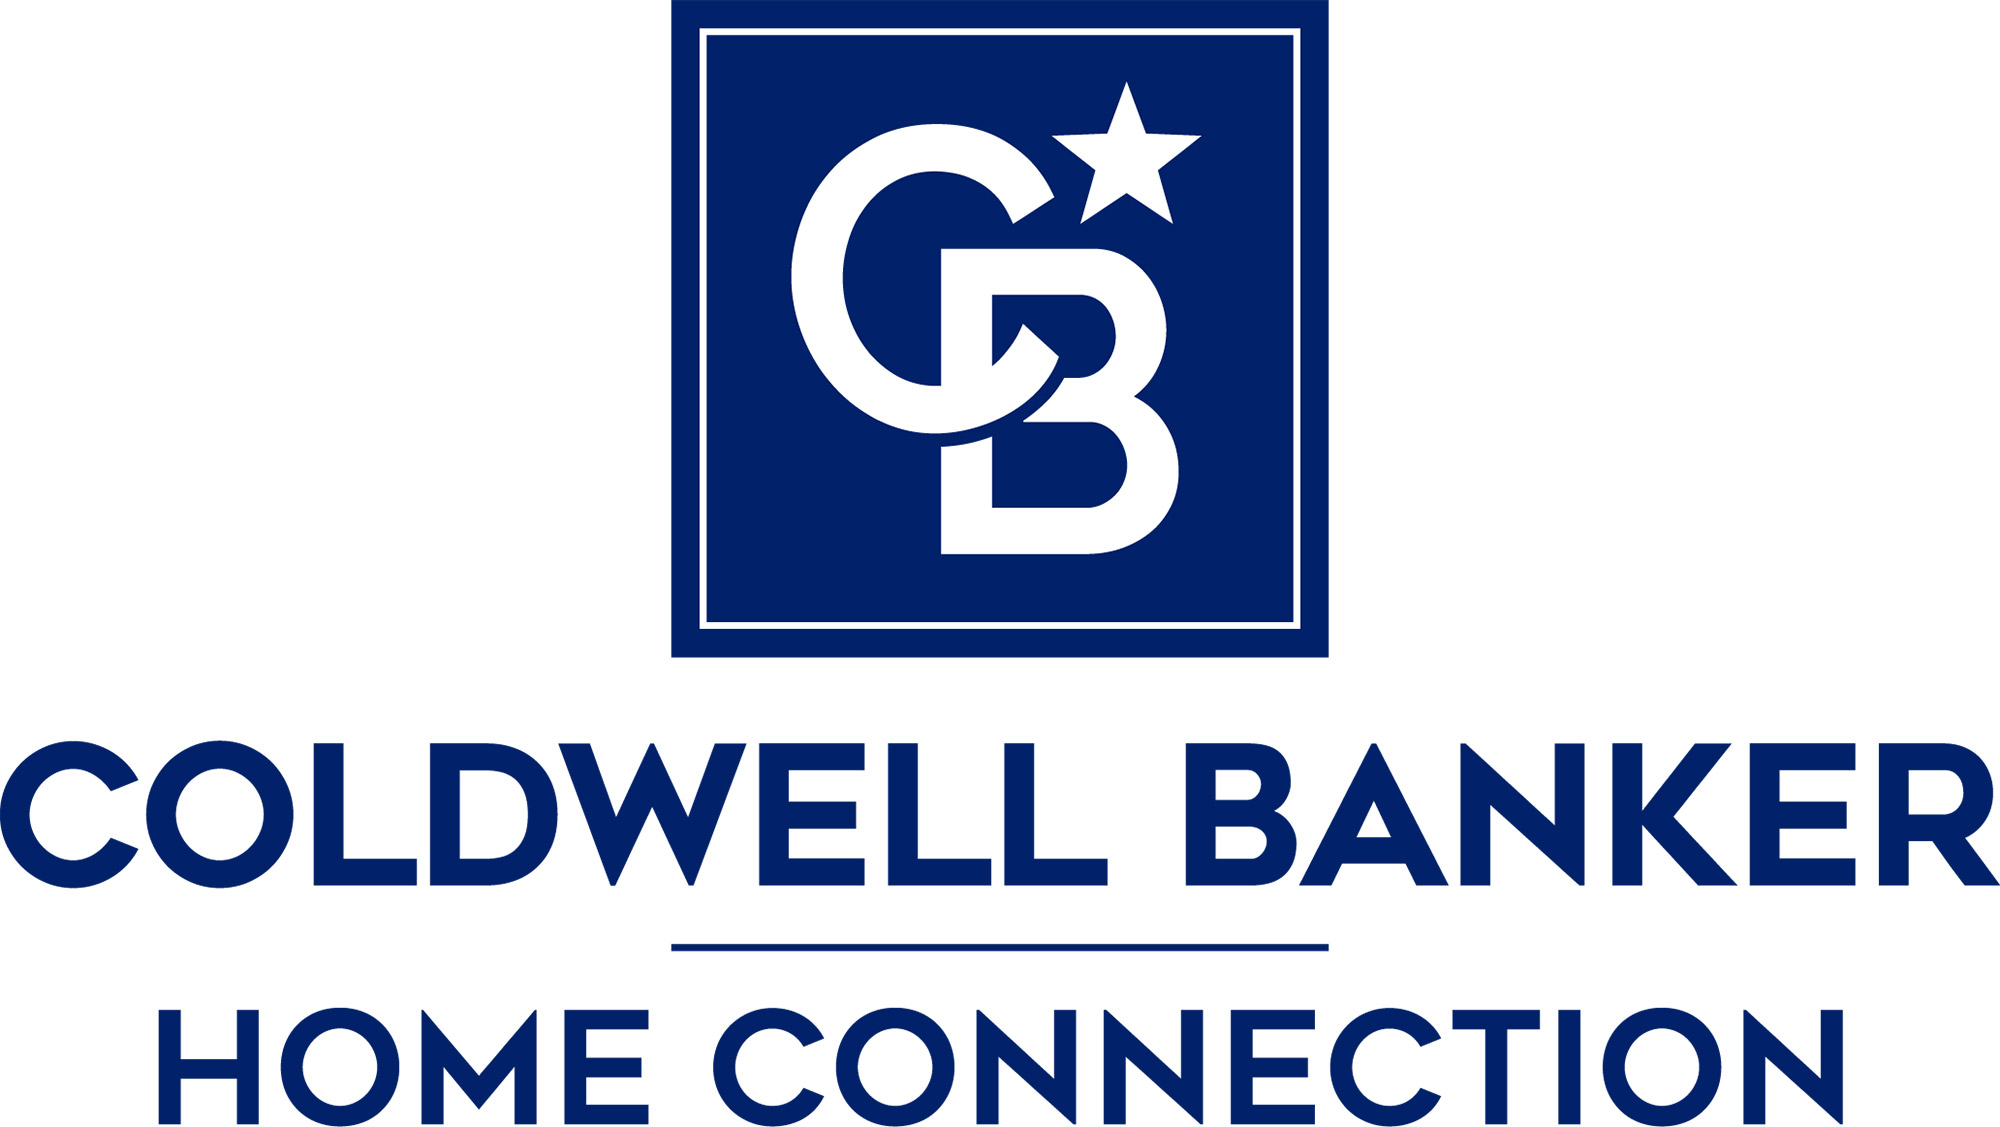 Julie Wesely-Smit - Coldwell Banker Home Connection Logo